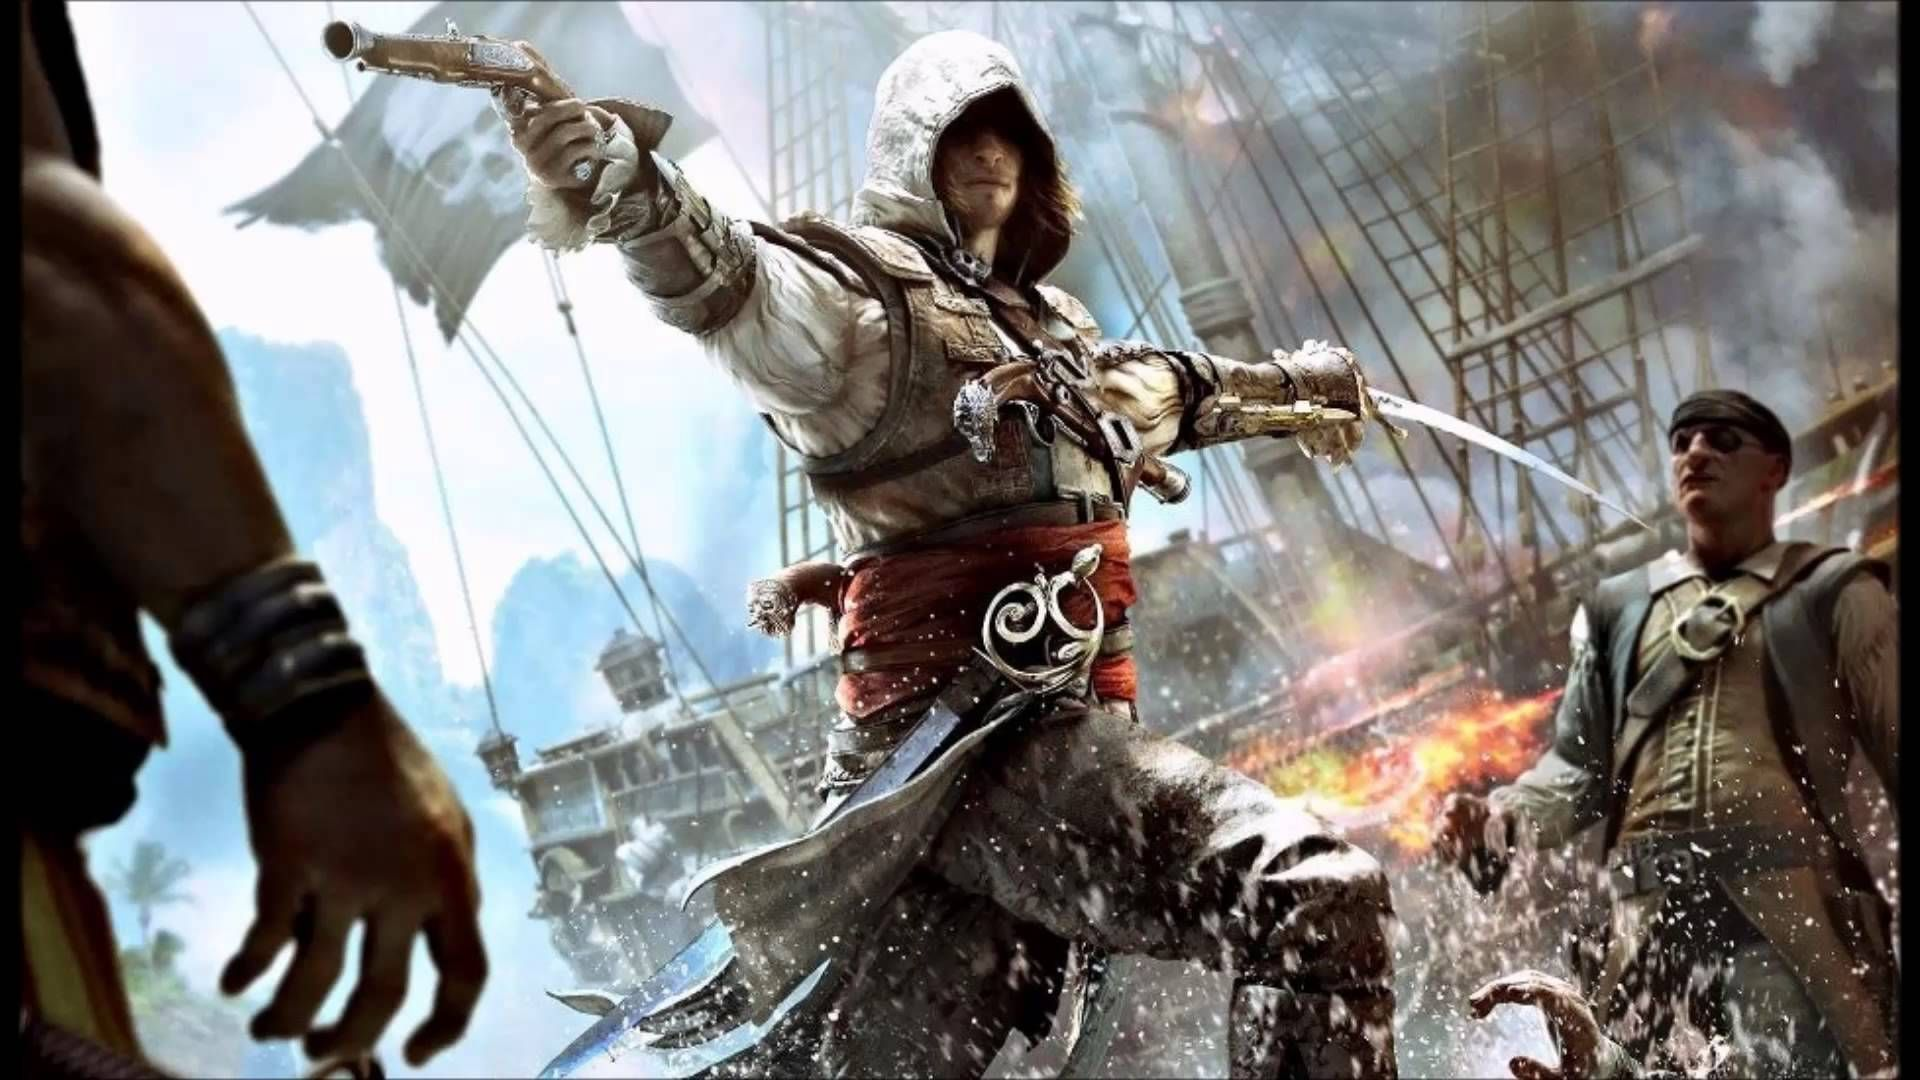 Assassin S Creed Iv Black Flag The Parting Glass Ending Soundtrack Assassins Creed Black Flag Assassin S Creed Black Assassins Creed